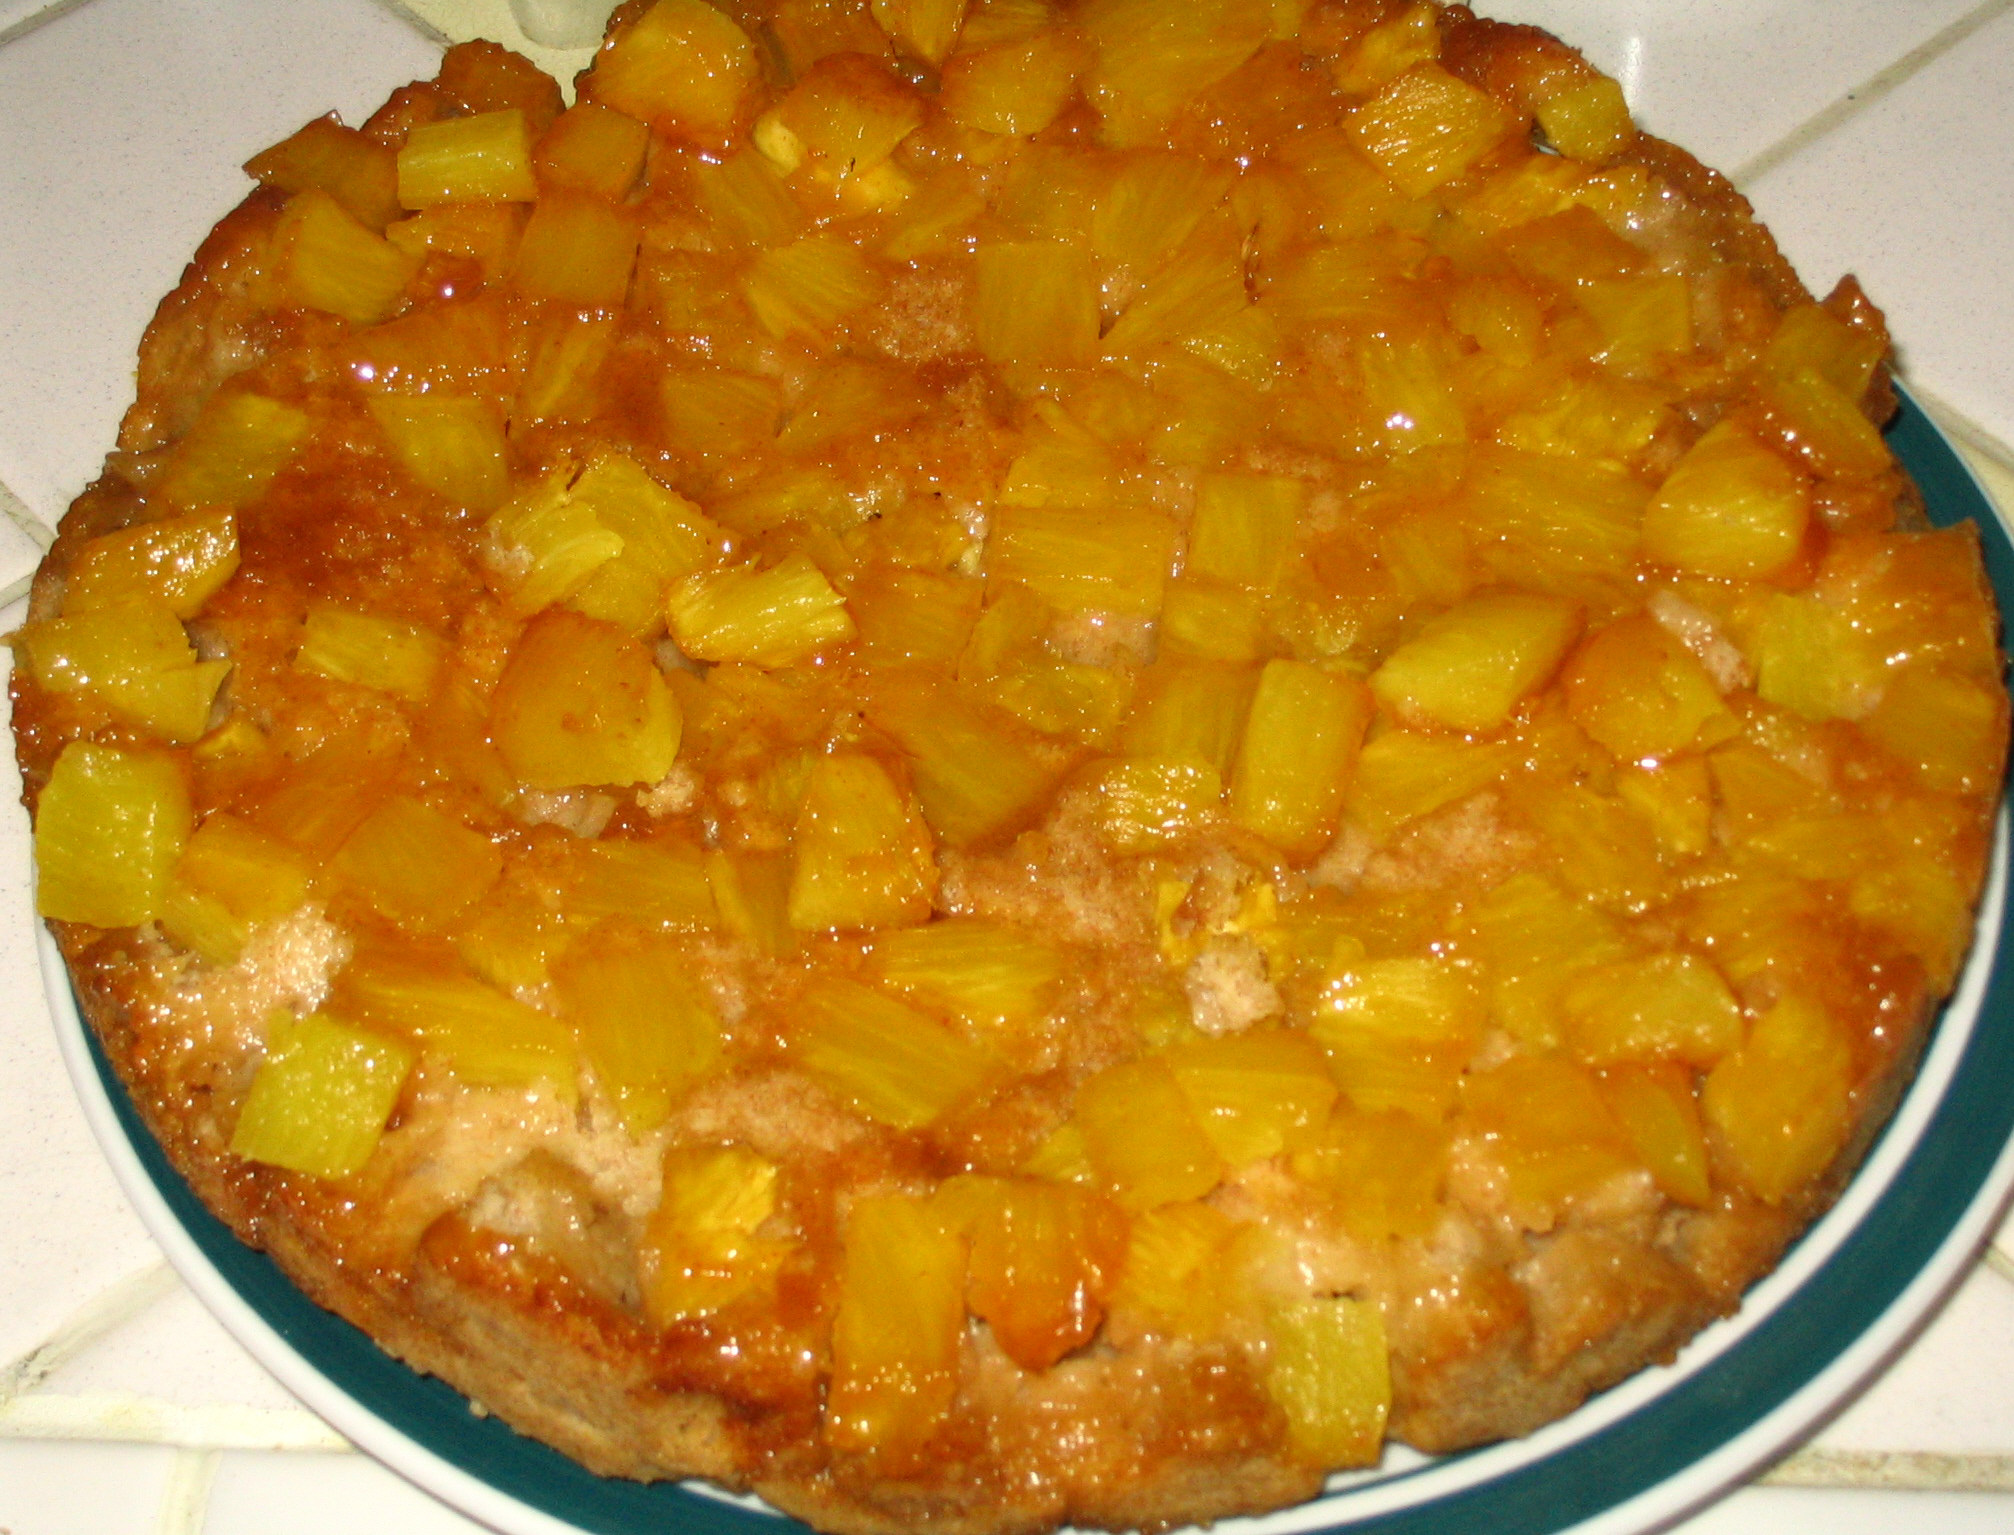 ... Everyday by Rick Bayless: Pineapple Skillet Upside-Down Cake Review